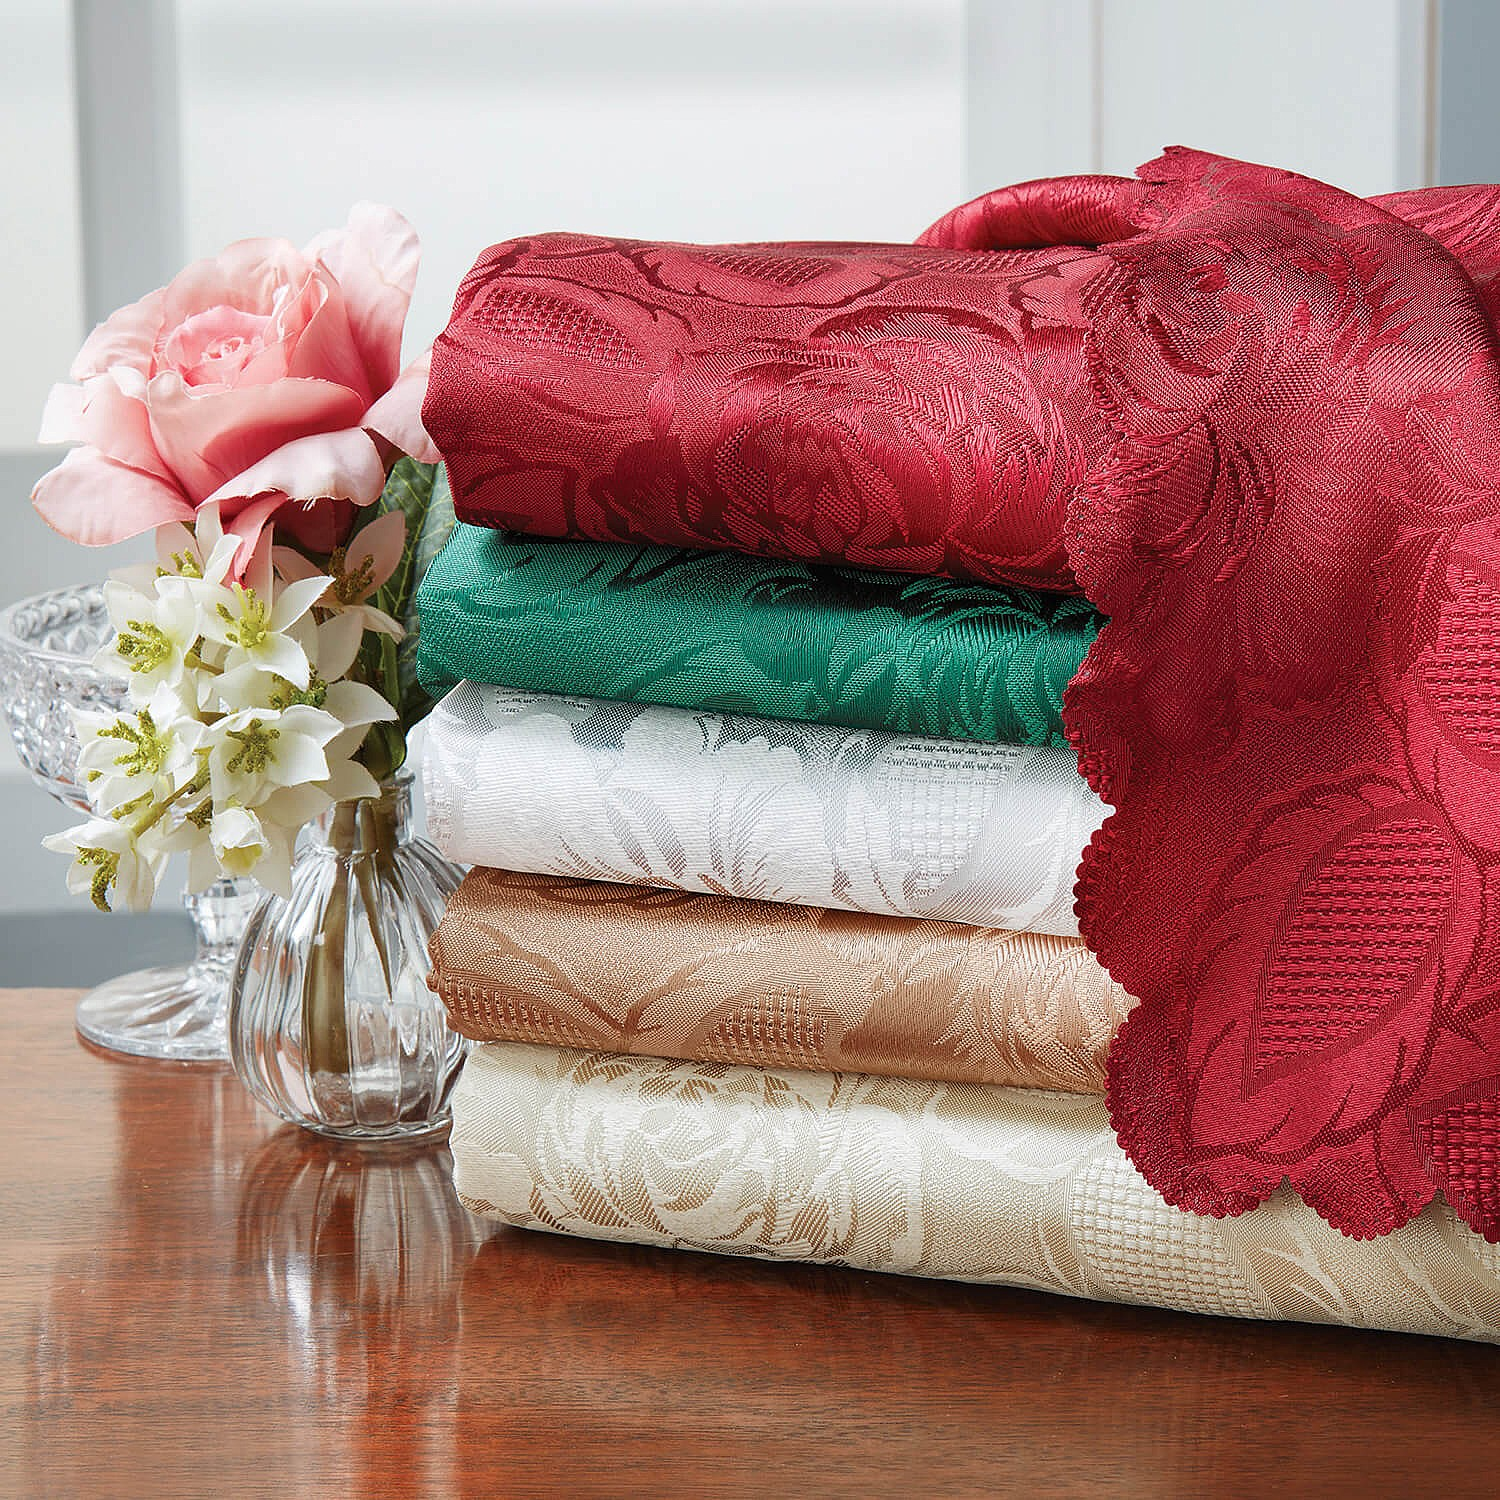 Damask Table Cloths Coffee 178cm Round by Coopers of Stortford